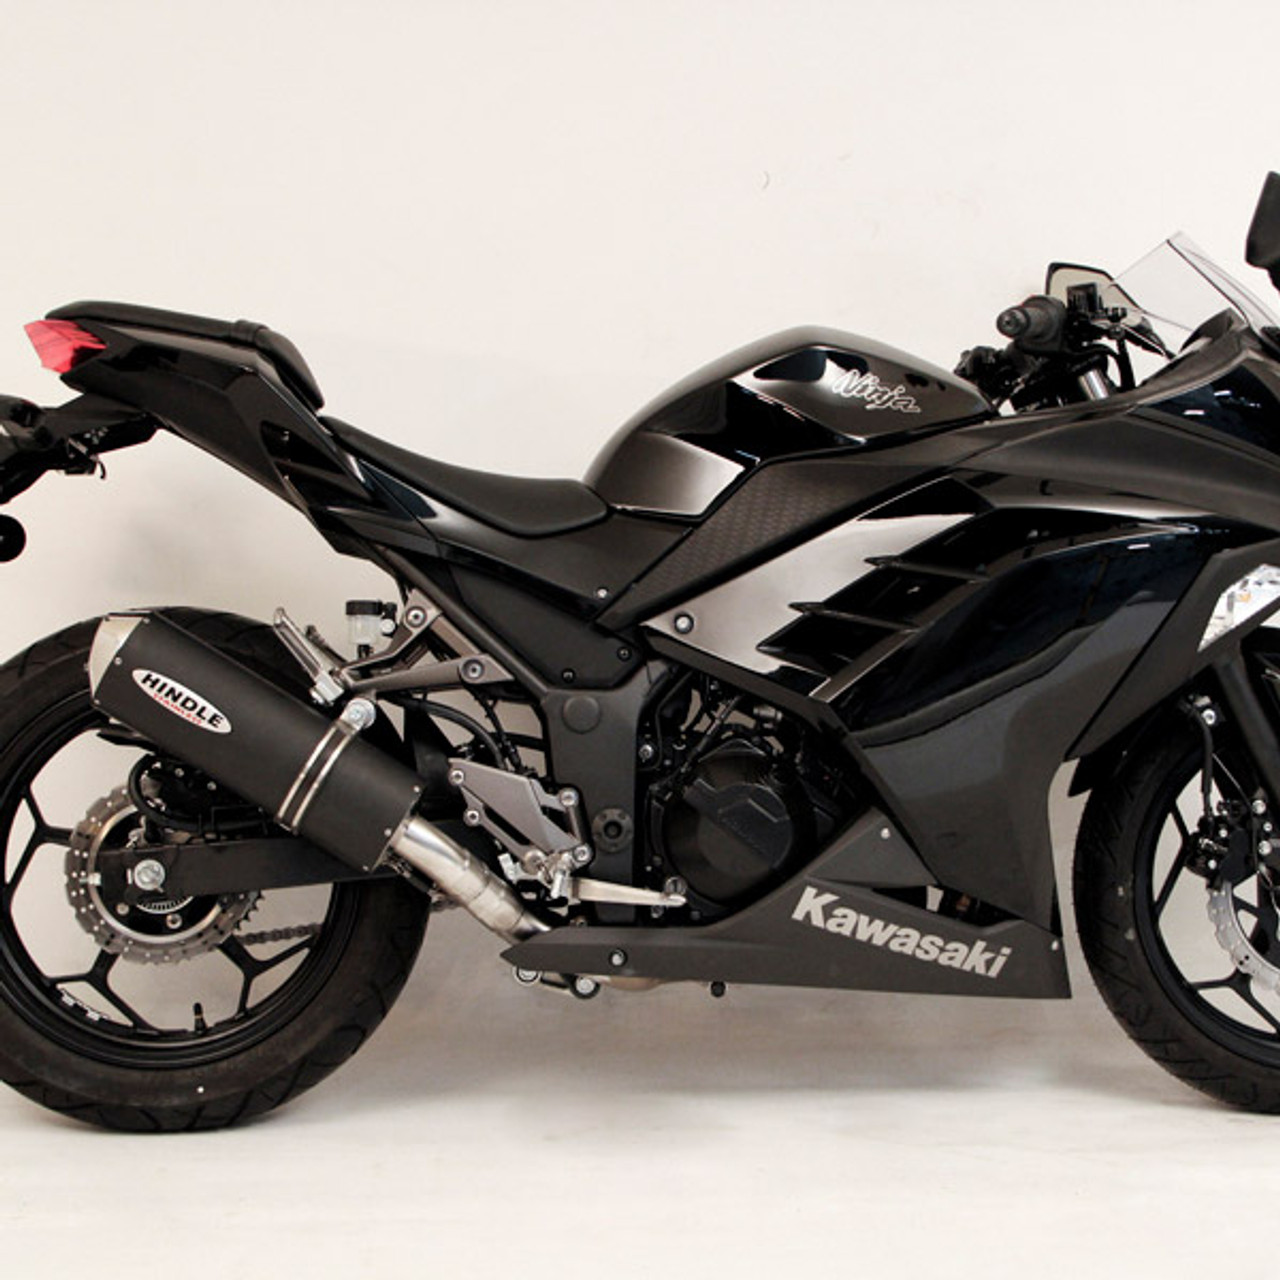 Hindle Evolution Full Exhaust System Kawasaki Ninja 300 13 17